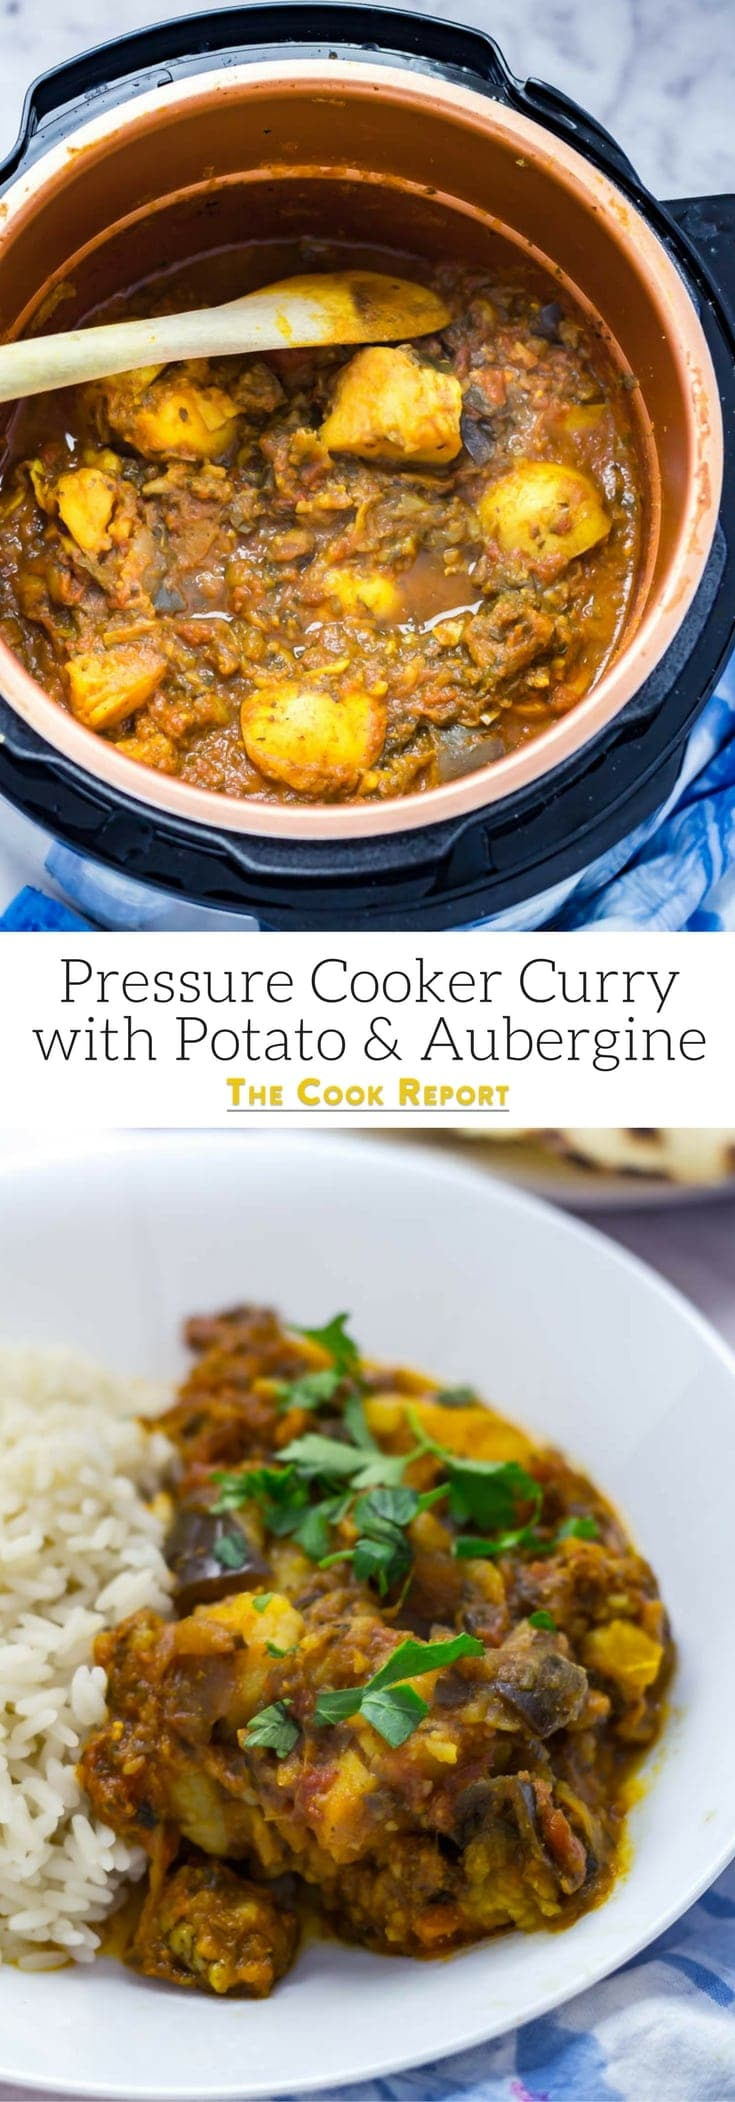 Pressure Cooker Curry with Potato & Aubergine. You won't believe how quick and easy this pressure cooker curry is! It's perfect for an instant pot or any electric pressure cooker. Serve with rice for a healthy vegetarian dinner. #pressurecooker #instantpot #vegetarian #curry